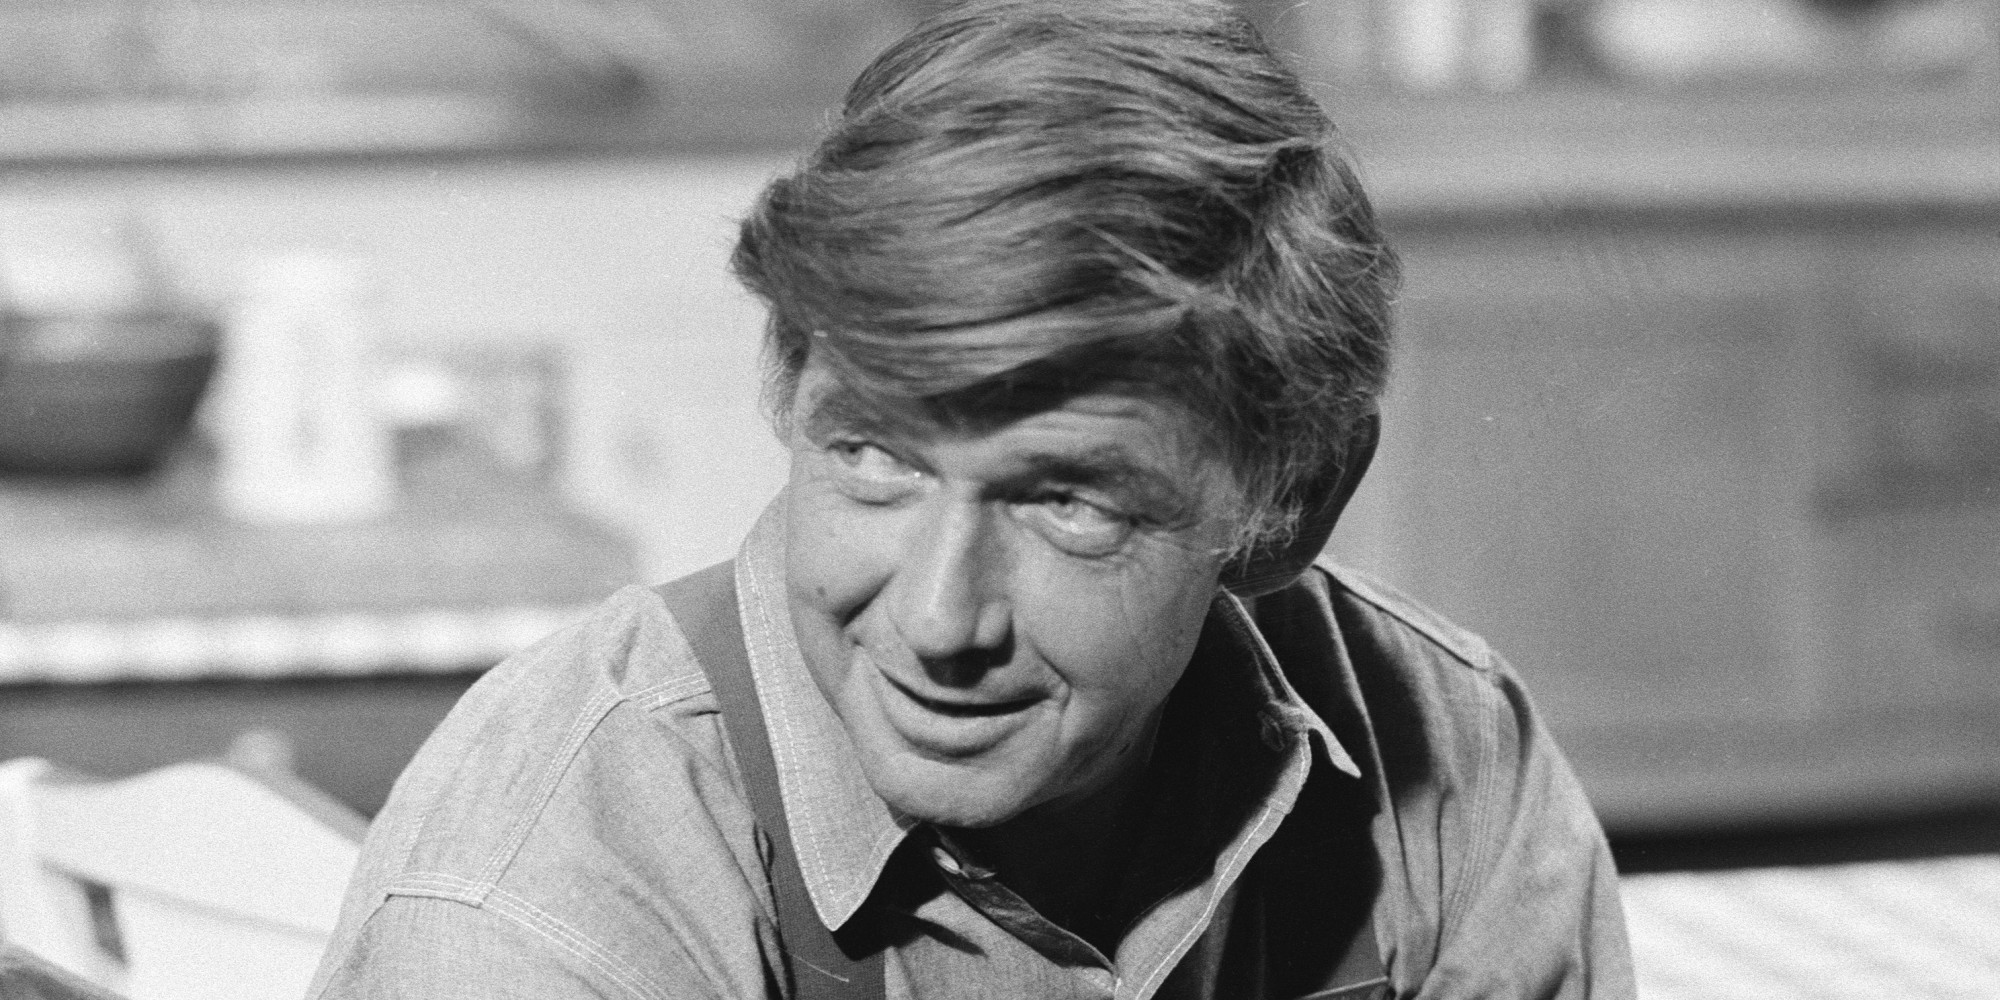 ralph waite net worthralph waite ncis, ralph waite, ralph waite wiki, ralph waite actor, ralph waite bio, ralph waite funeral, ralph waite cause of death, ralph waite net worth, ralph waite bones, ralph waite imdb, ralph waite died, ralph waite mort, ralph waite movies and tv shows, ralph waite tot, ralph waite find a grave, ralph waite linda east, ralph waite grey's anatomy, ralph waite morto, ralph waite obituary, ralph waite alcoholic